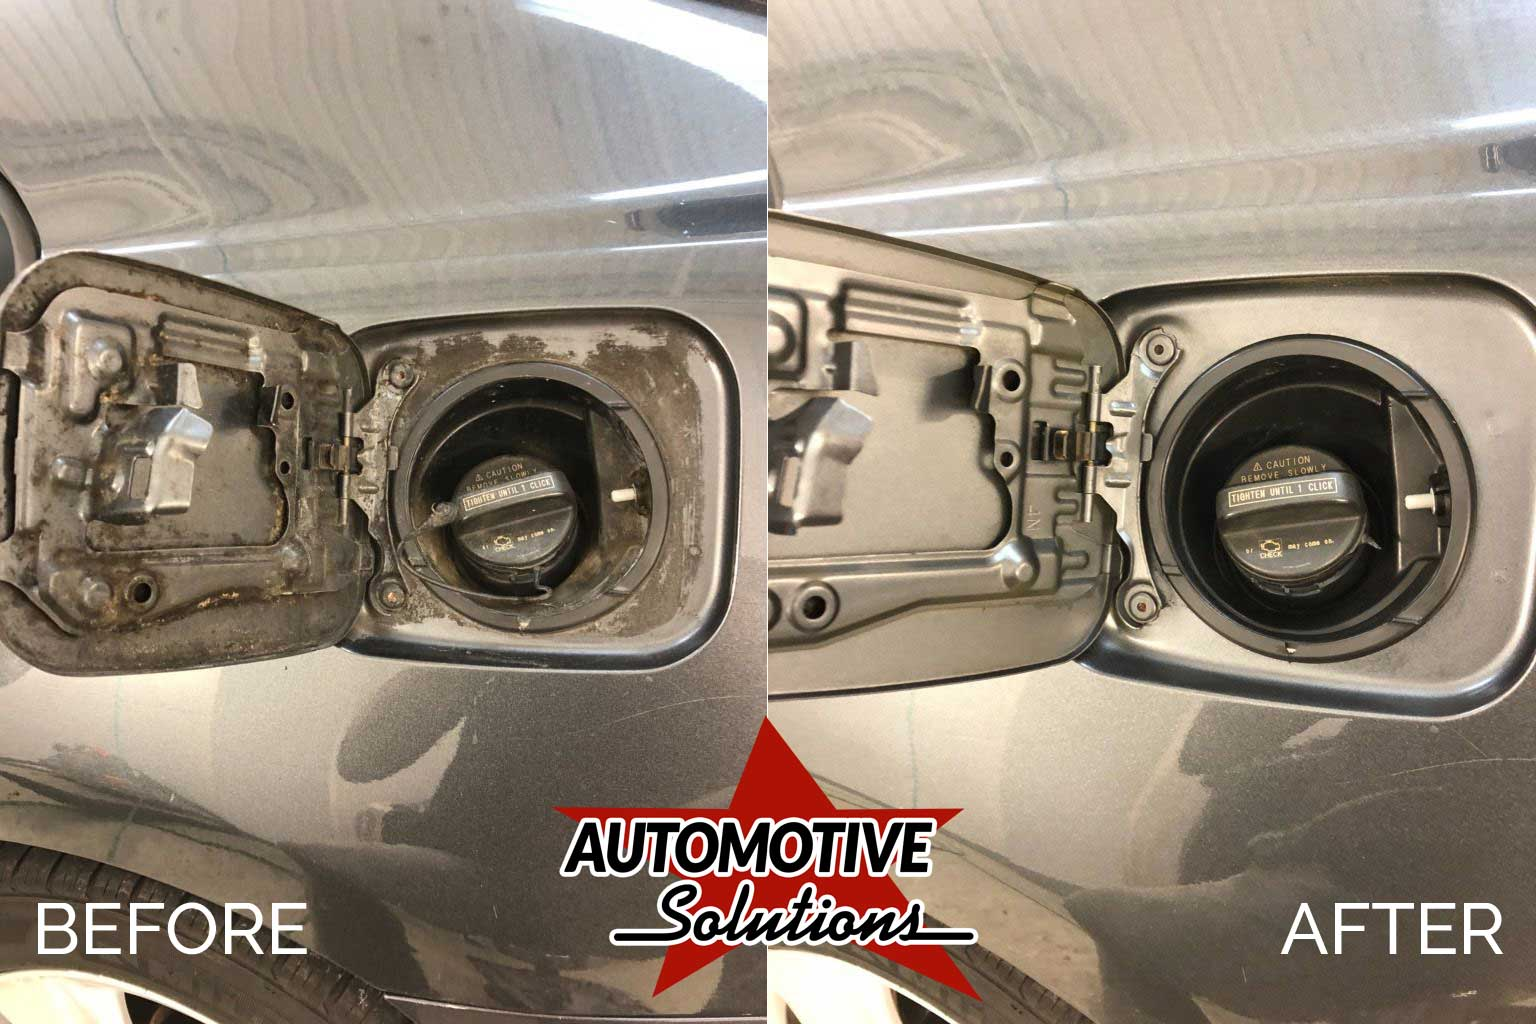 Complete auto cleaning and degreasing.